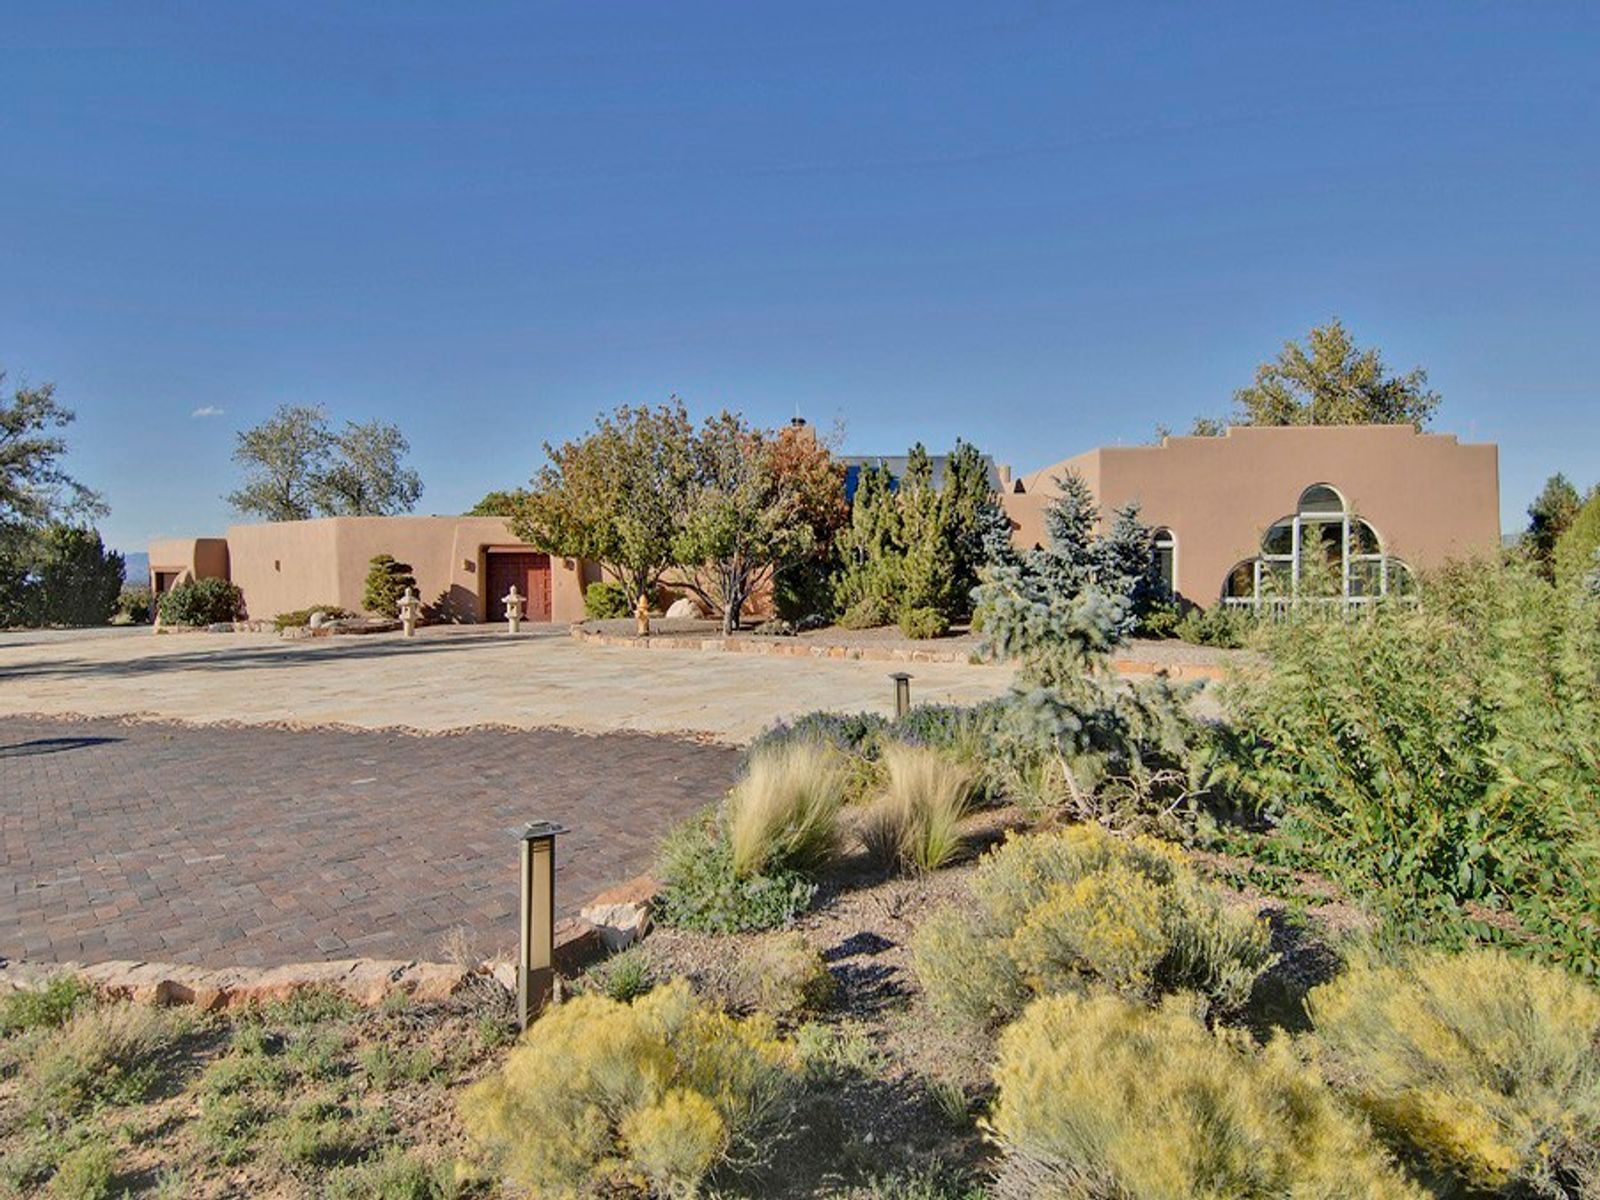 21 Goodnight Trail West, Santa Fe NM Single Family Home - Santa Fe Real Estate